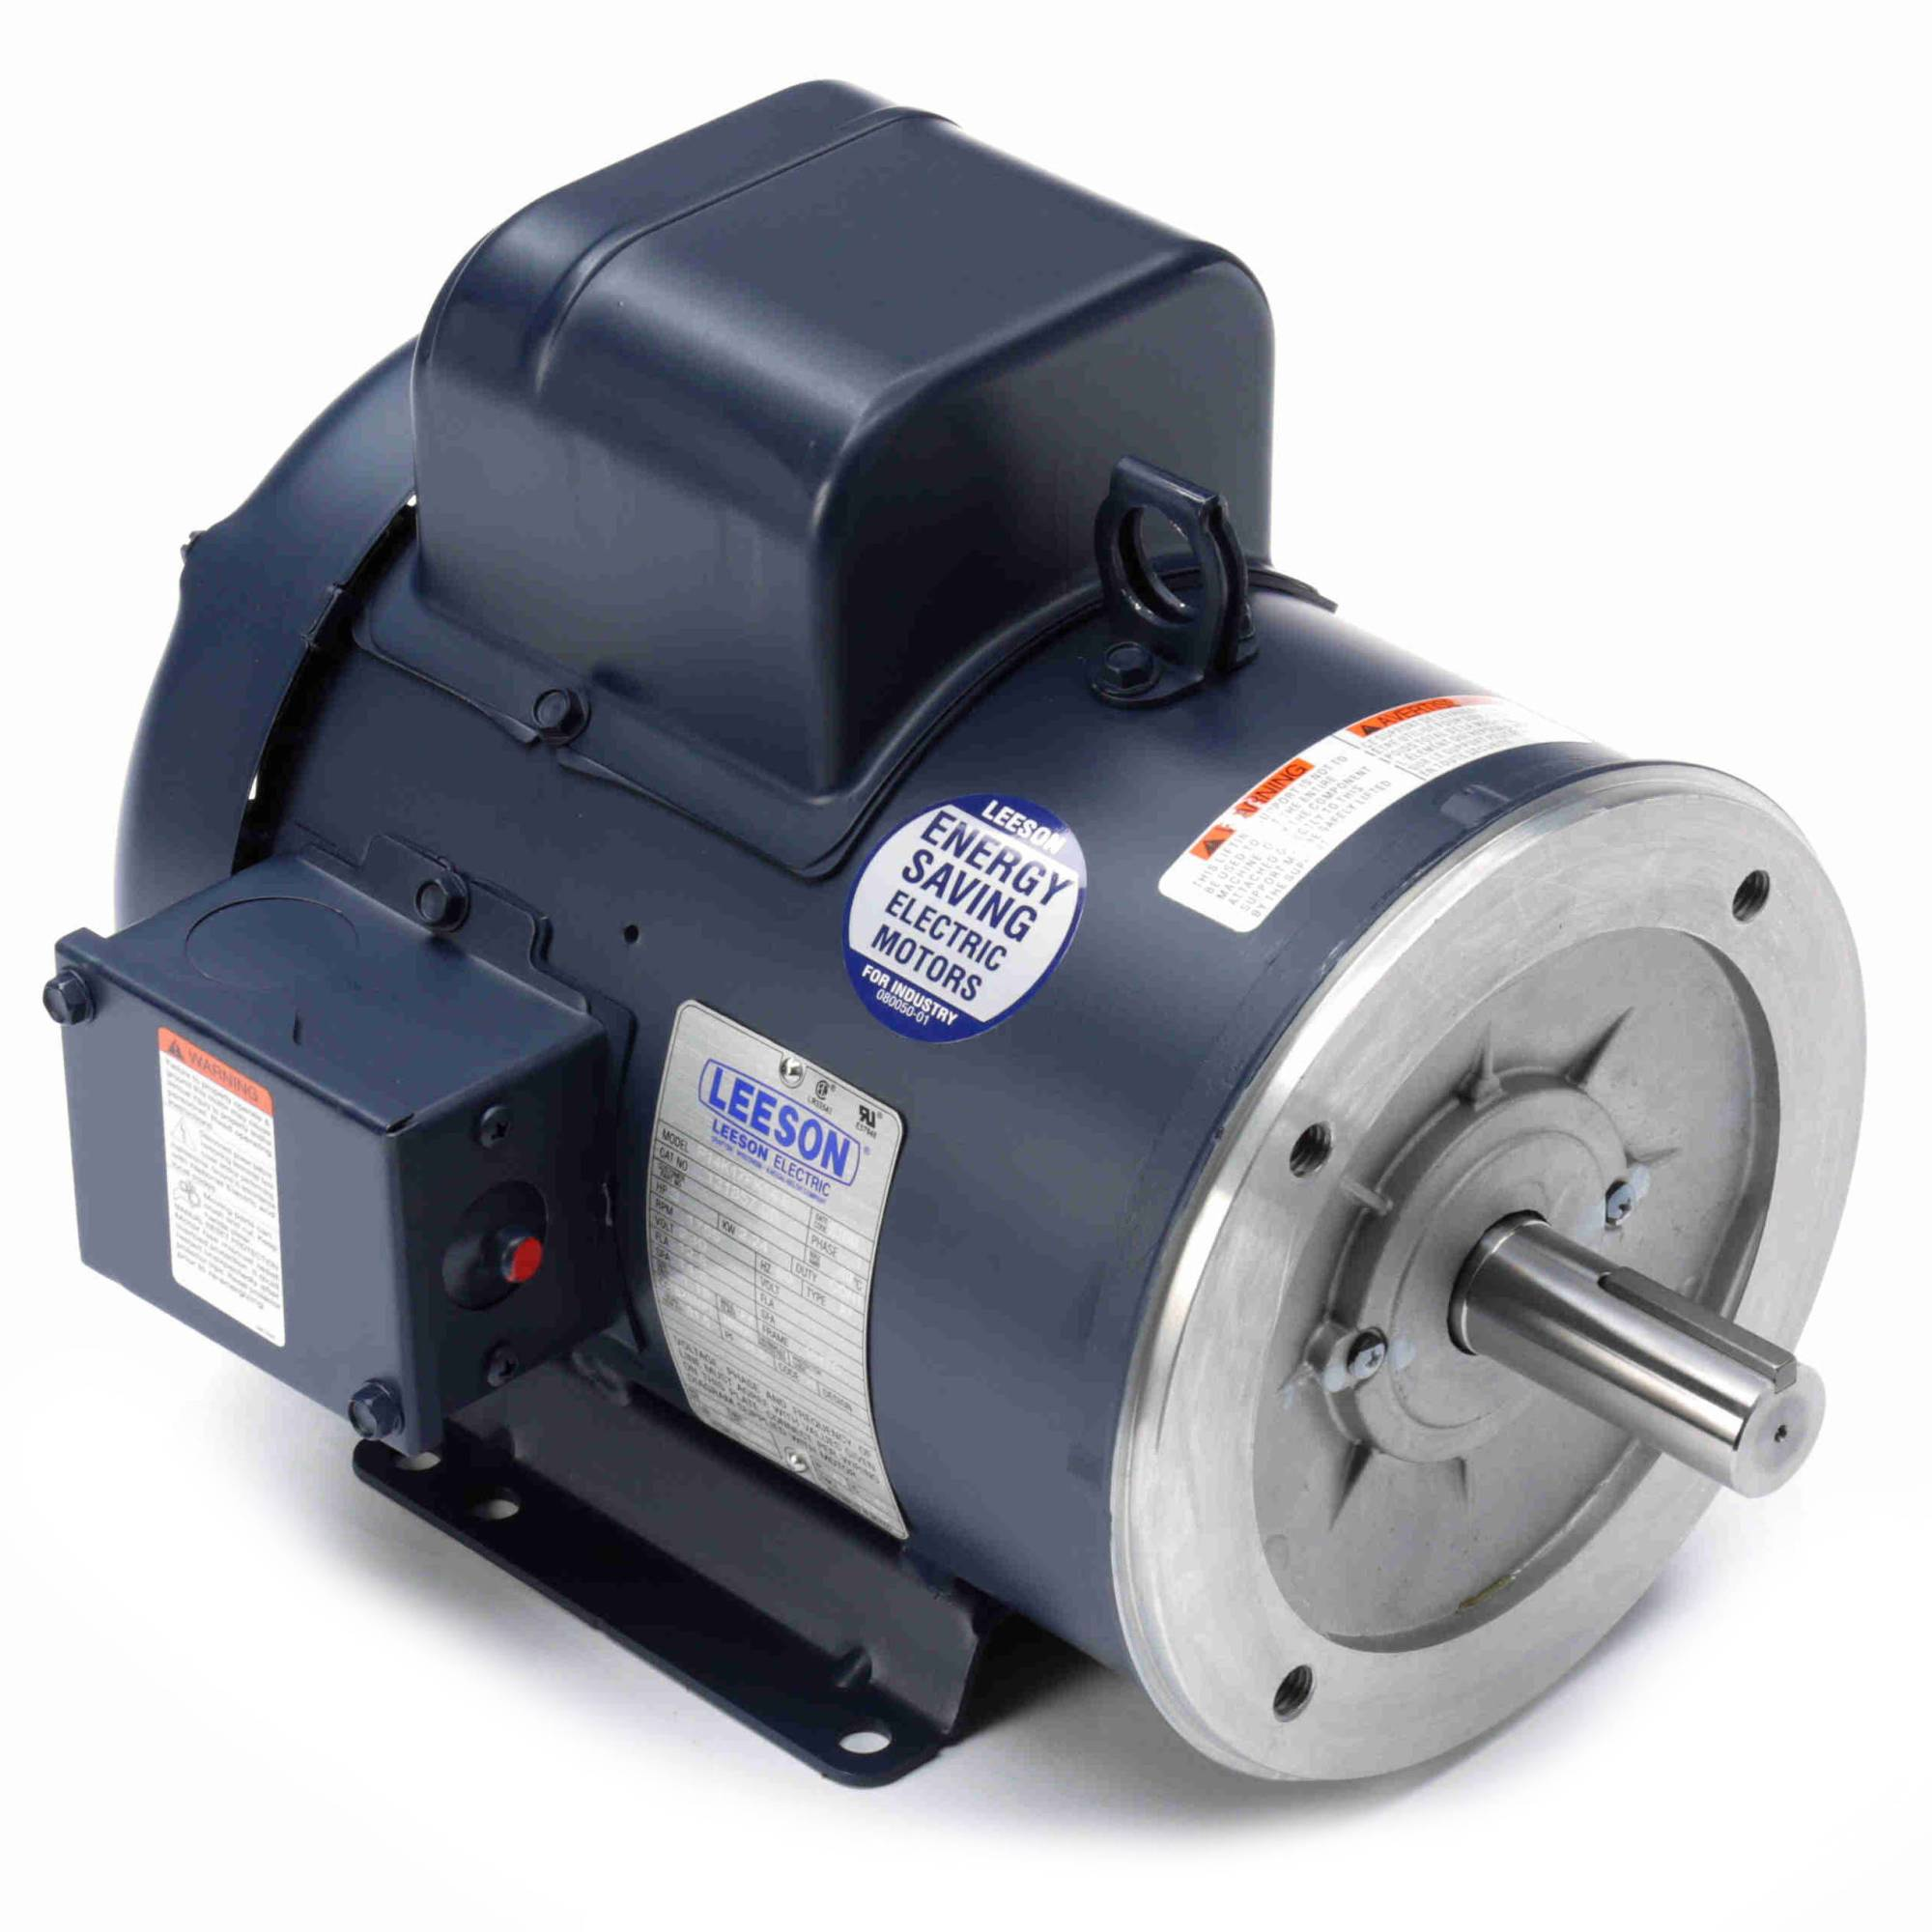 hight resolution of 131857 00 leeson 3hp electric motor 1800rpm 1